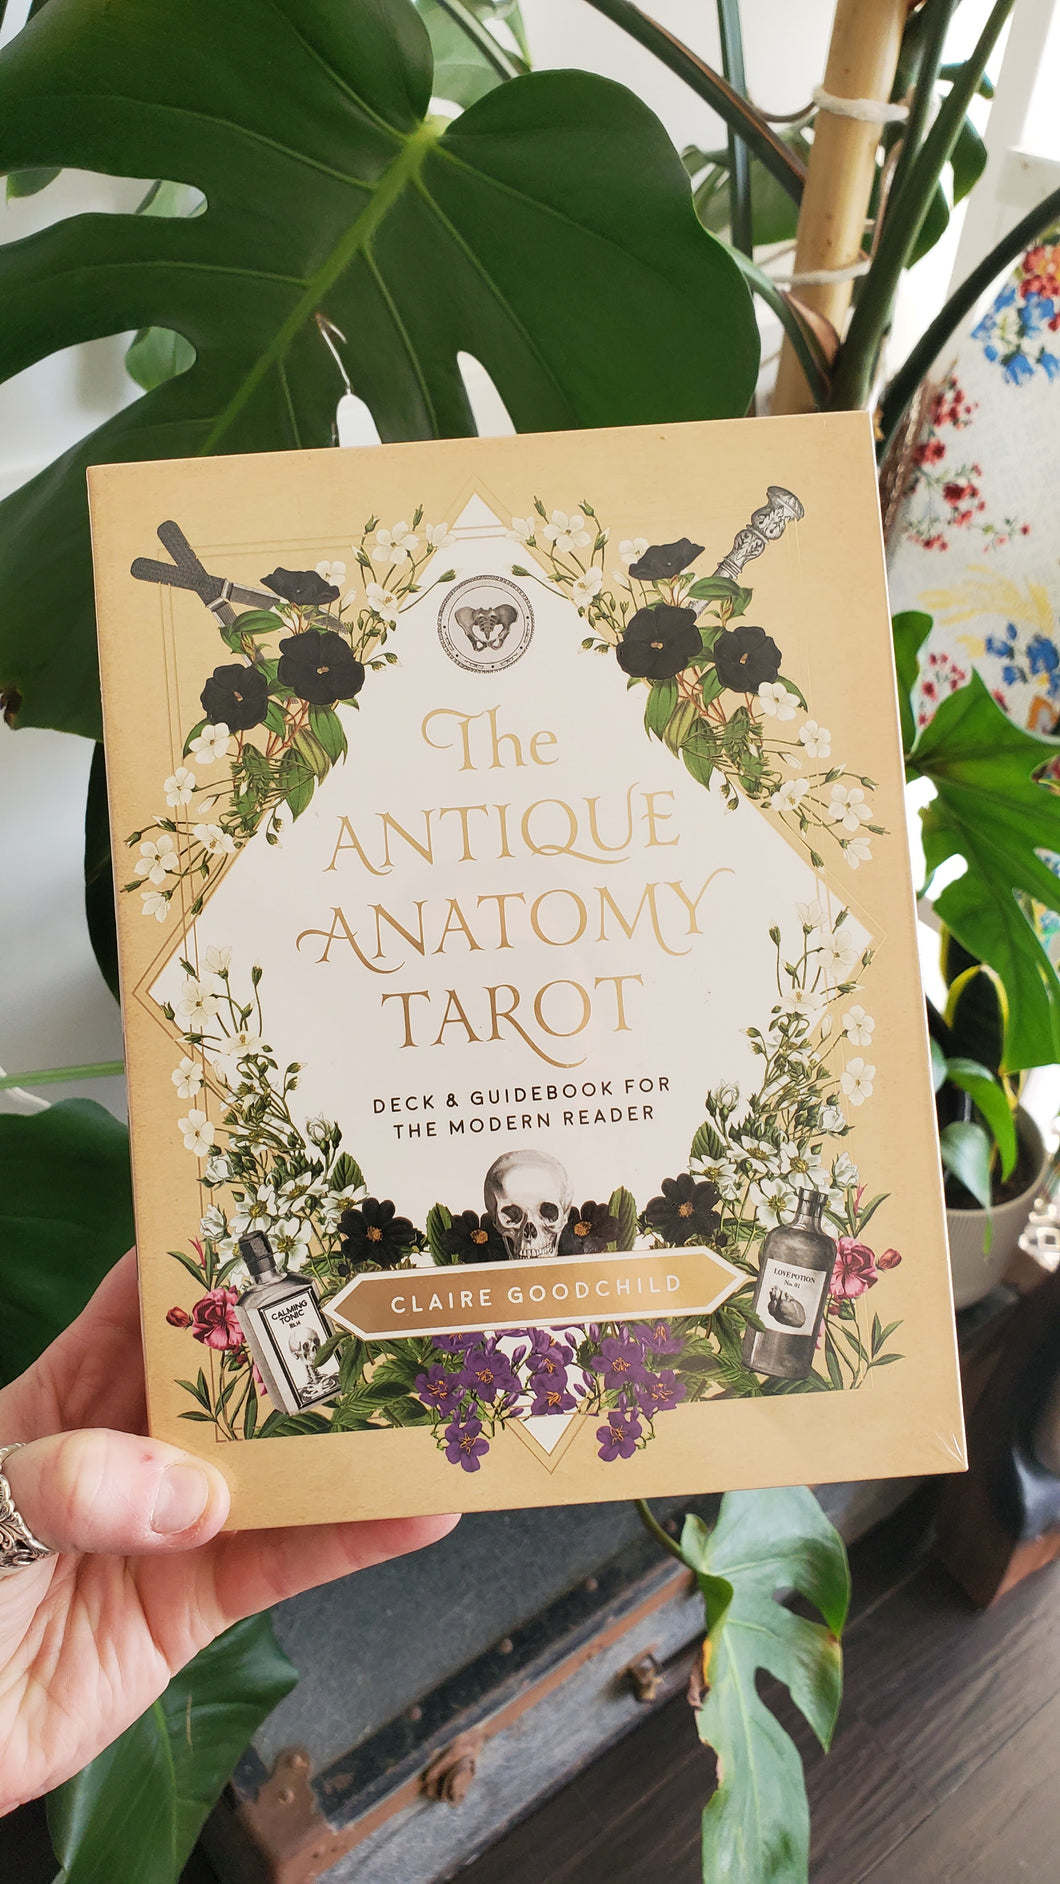 The Antique Anatomy Tarot